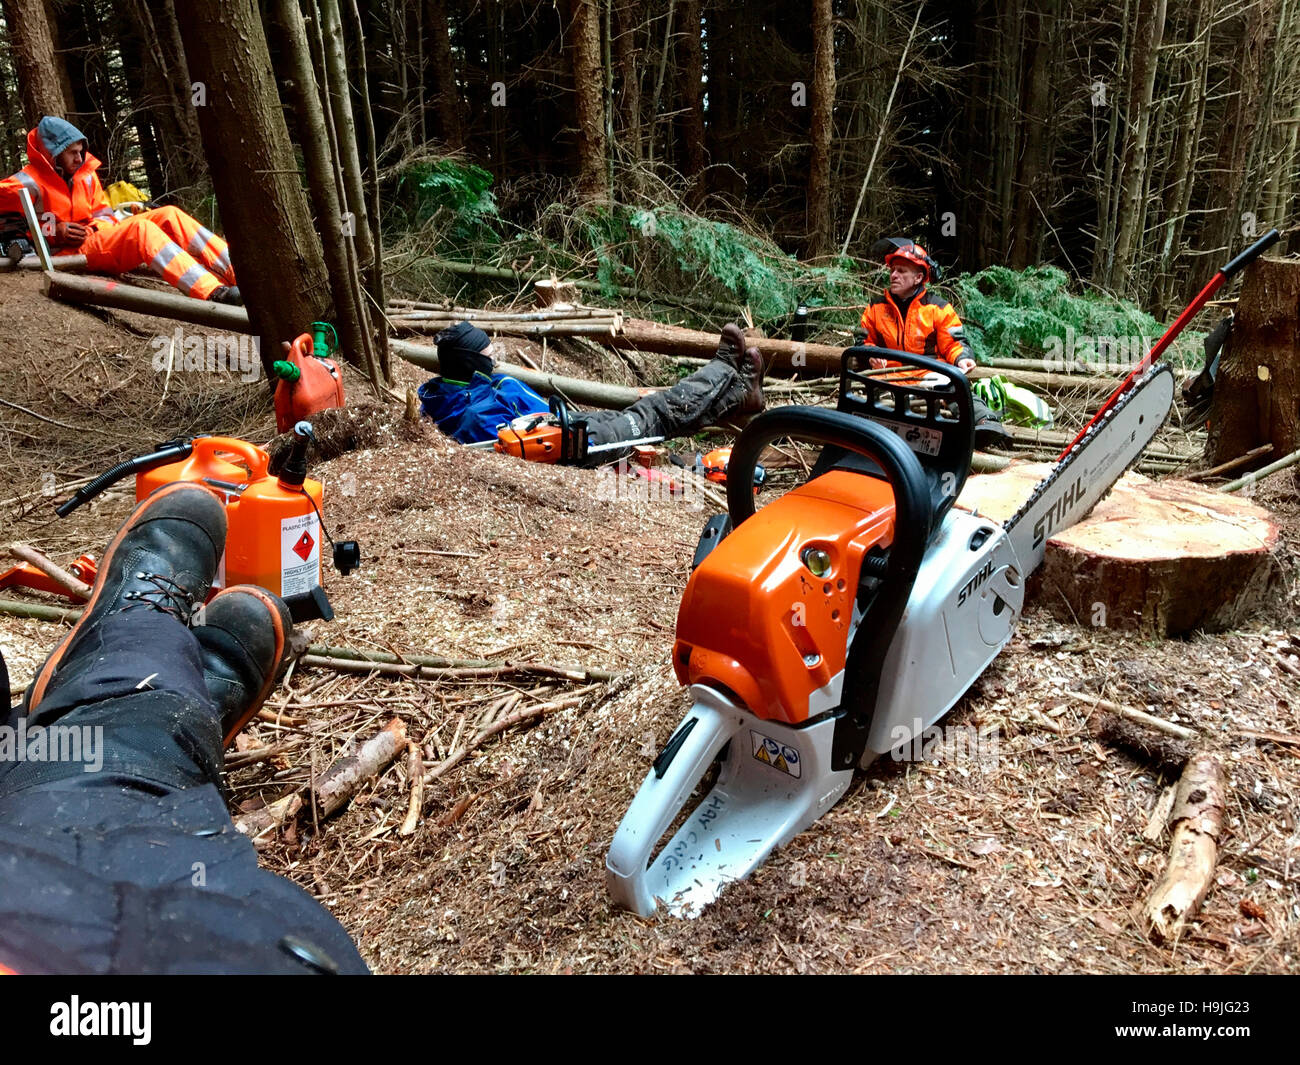 Stihl chainsaw stock photos images